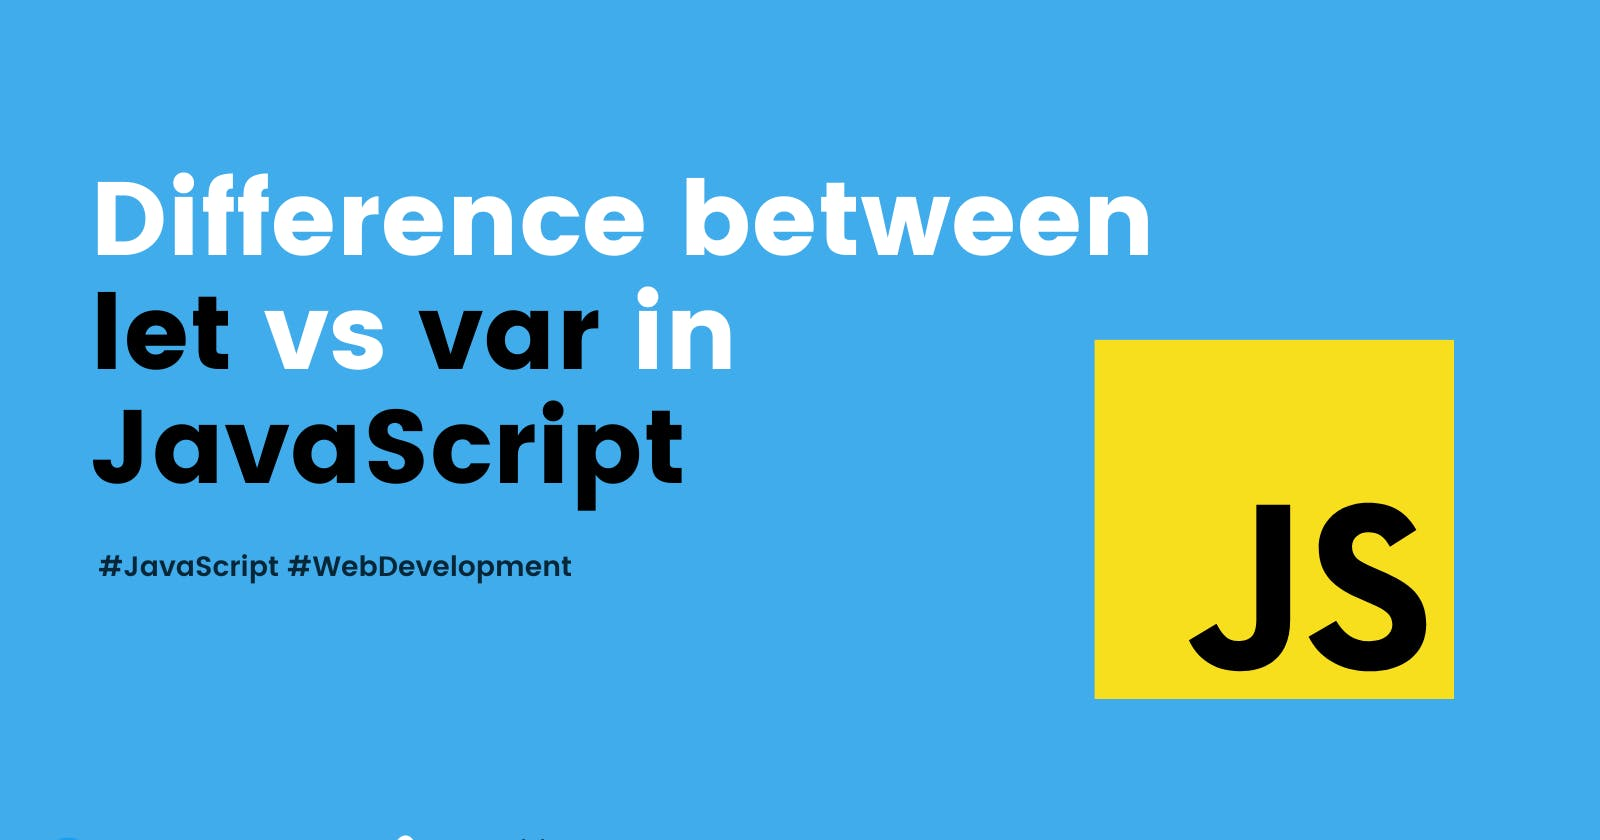 Difference between var and let in JavaScript